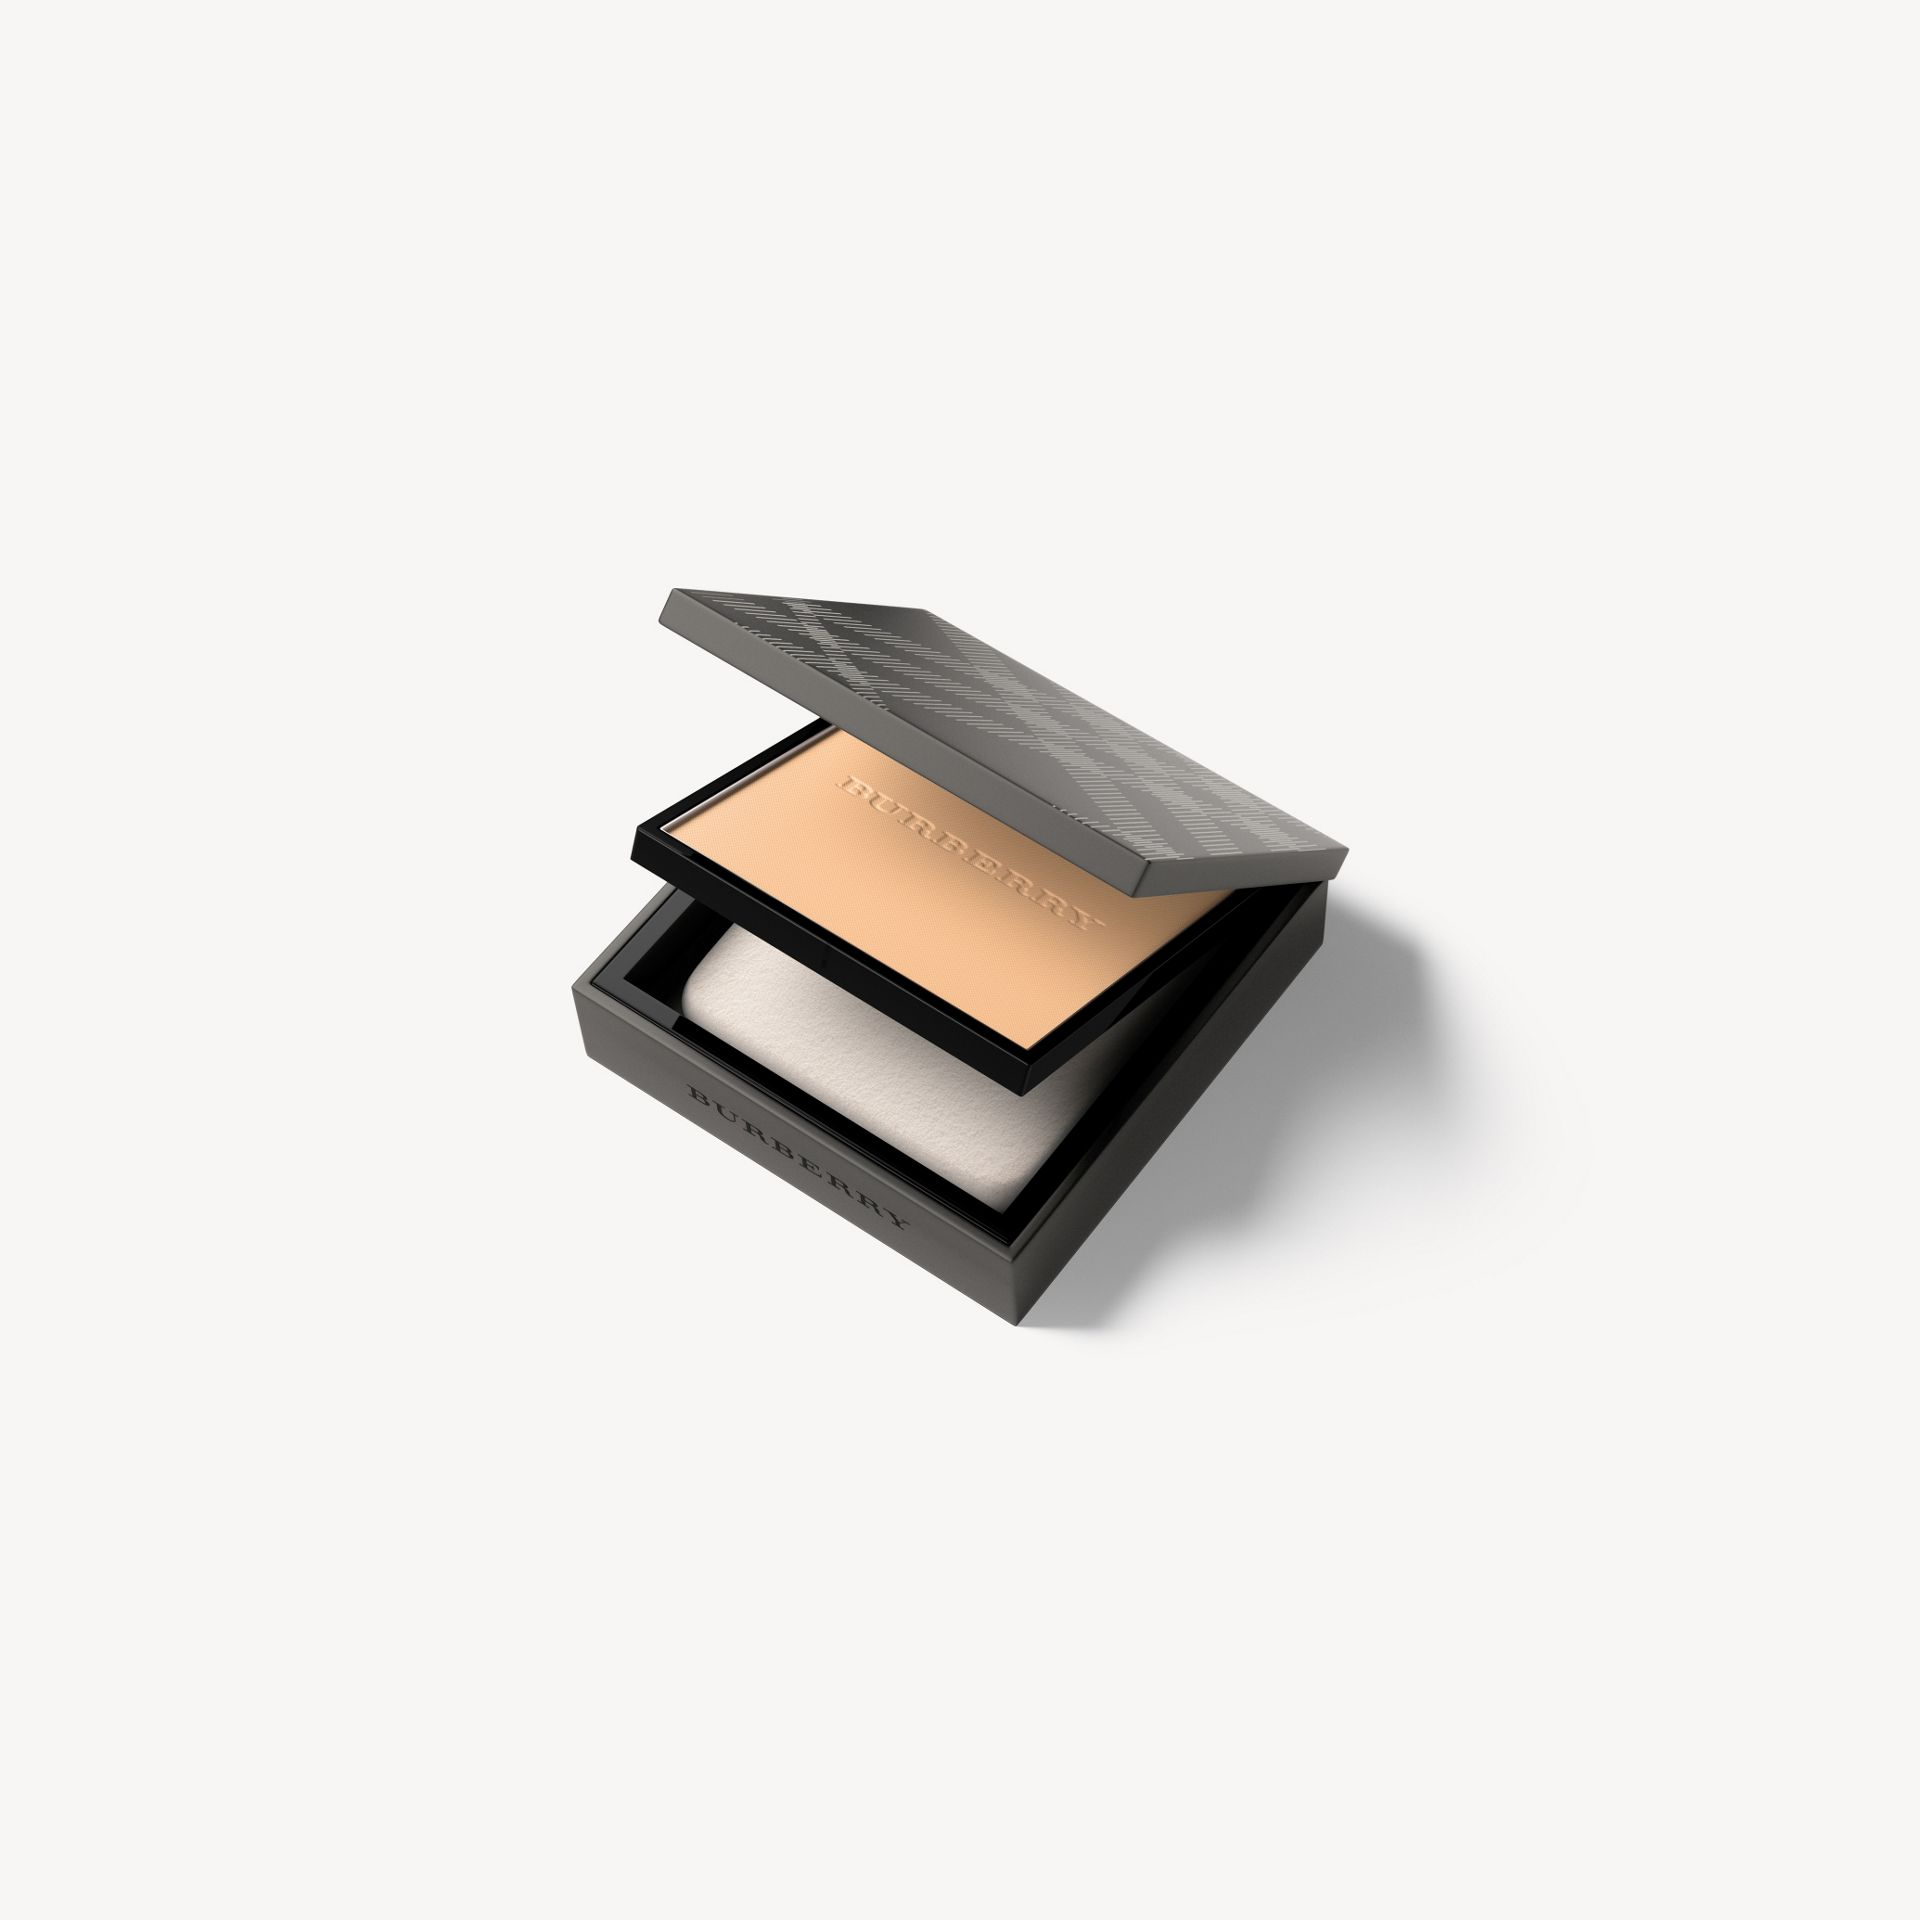 Burberry Cashmere Compact - Light Honey No.10 - Donna | Burberry - immagine della galleria 0